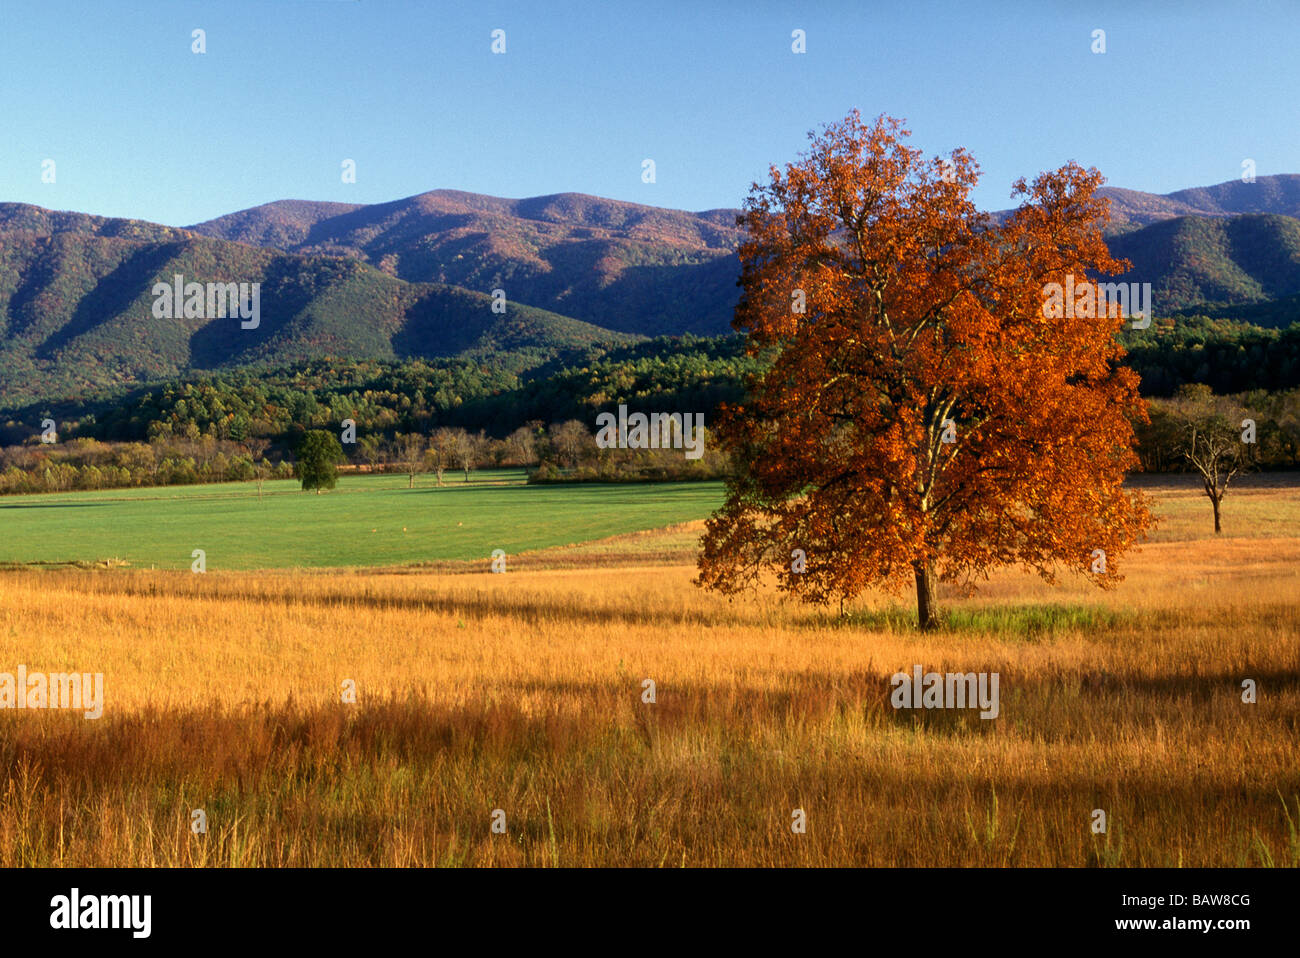 Fall Colors in Cades Cove - Smoky Mountain National Park - Stock Image